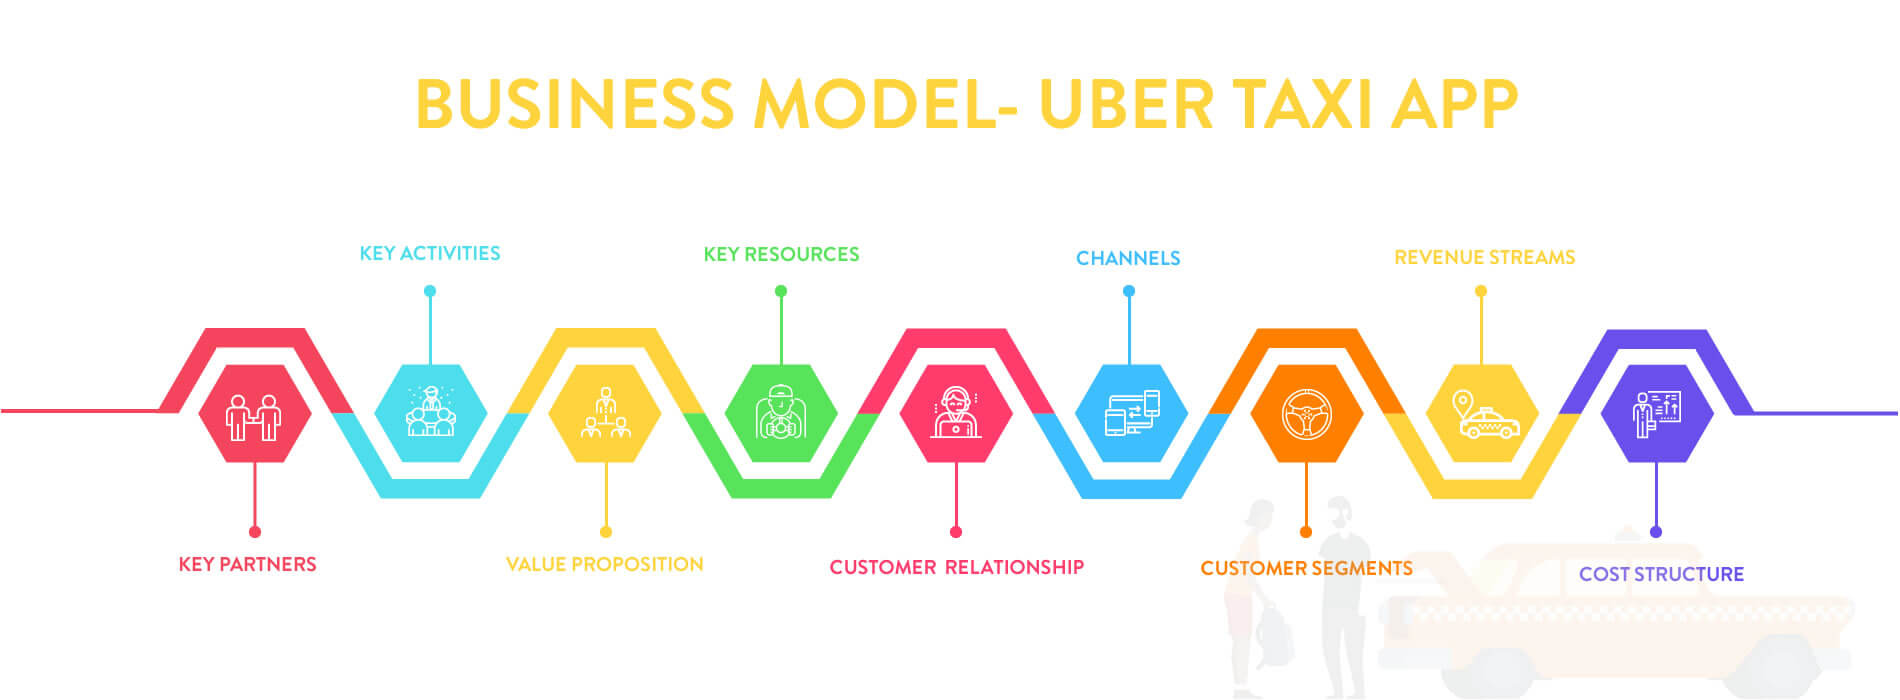 How Uber Works? Insights into Business and Revenue Model